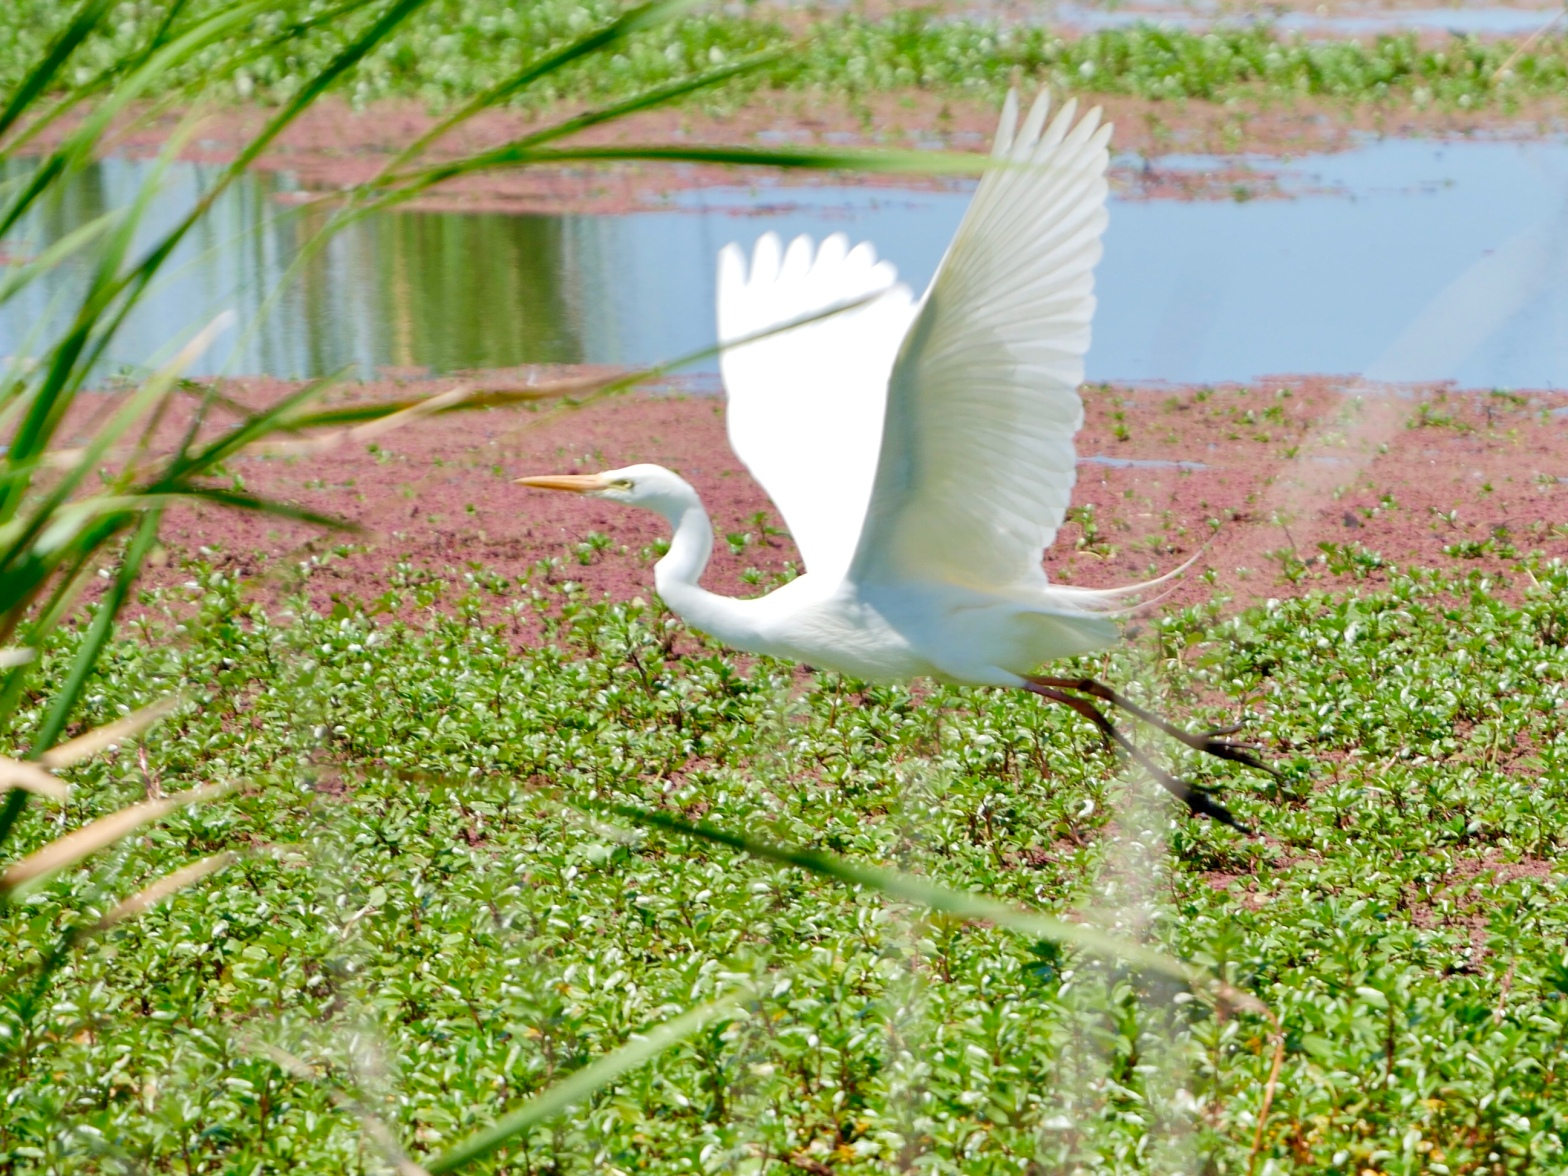 Intermediate egret on Willancorah wetland in the Macquarie Marshes